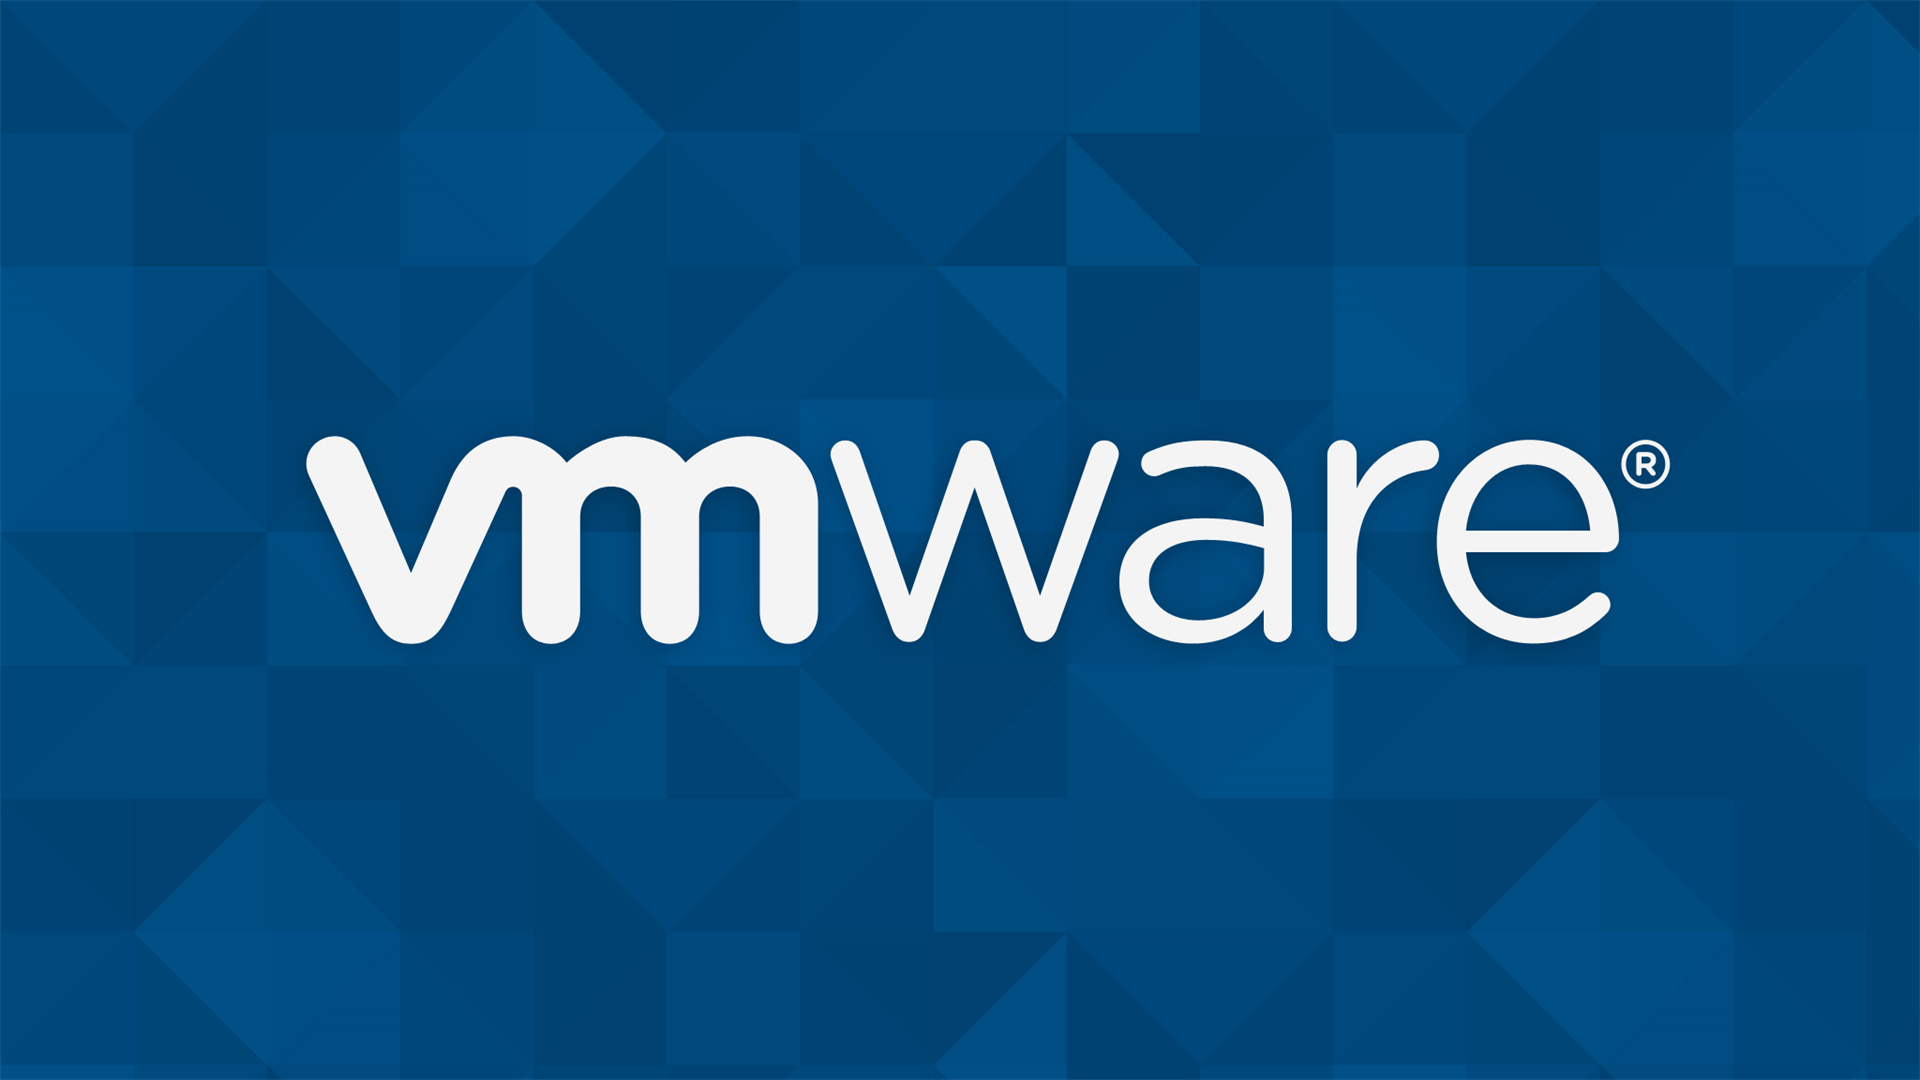 The Complete VMware vSphere 6.5 Course: Beginner to Advanced Screenshot